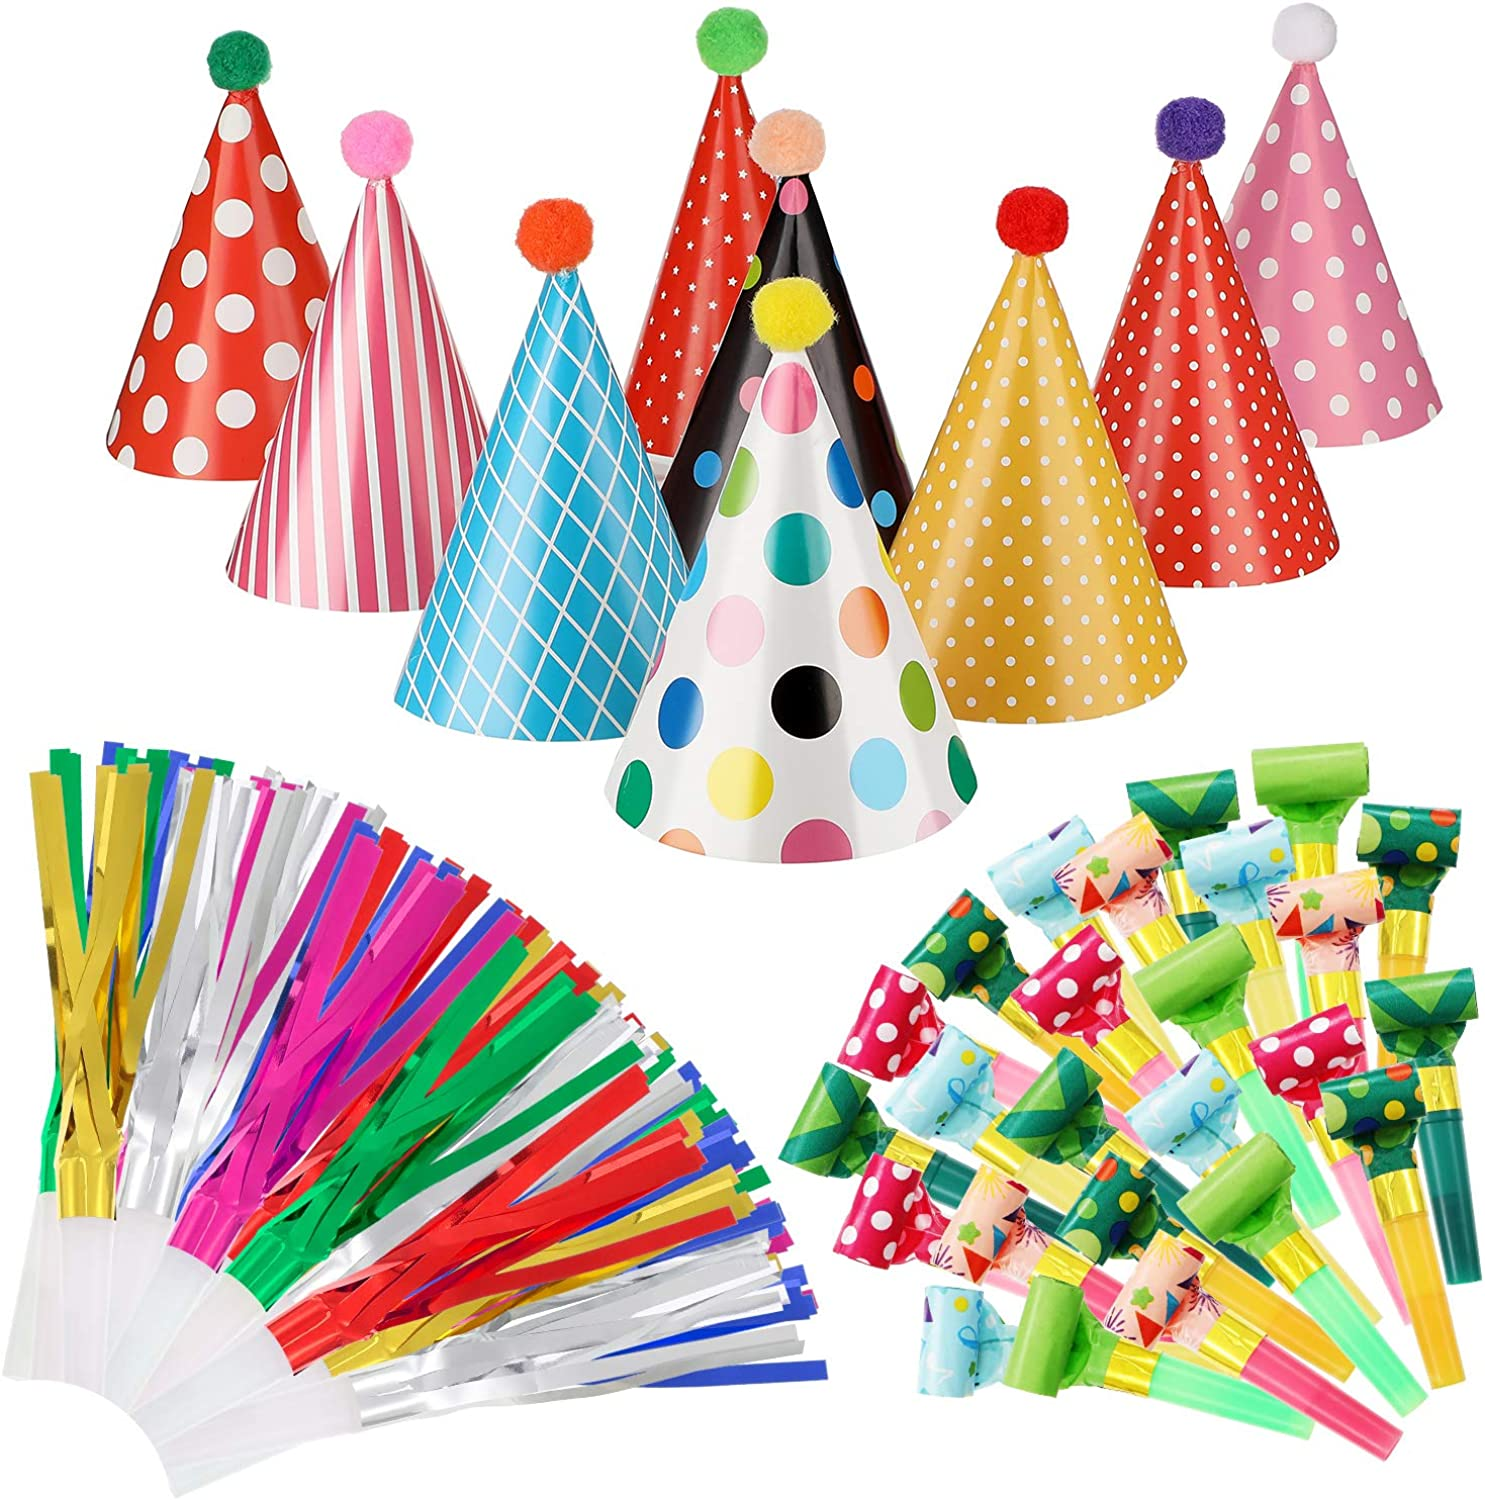 9 Pieces Birthday Party Hats Adorable Party Cone Hats with 24 Colorful Paper Blowouts and 24 Glittering Metallic Tassel Blowouts for Birthday Party: Clothing